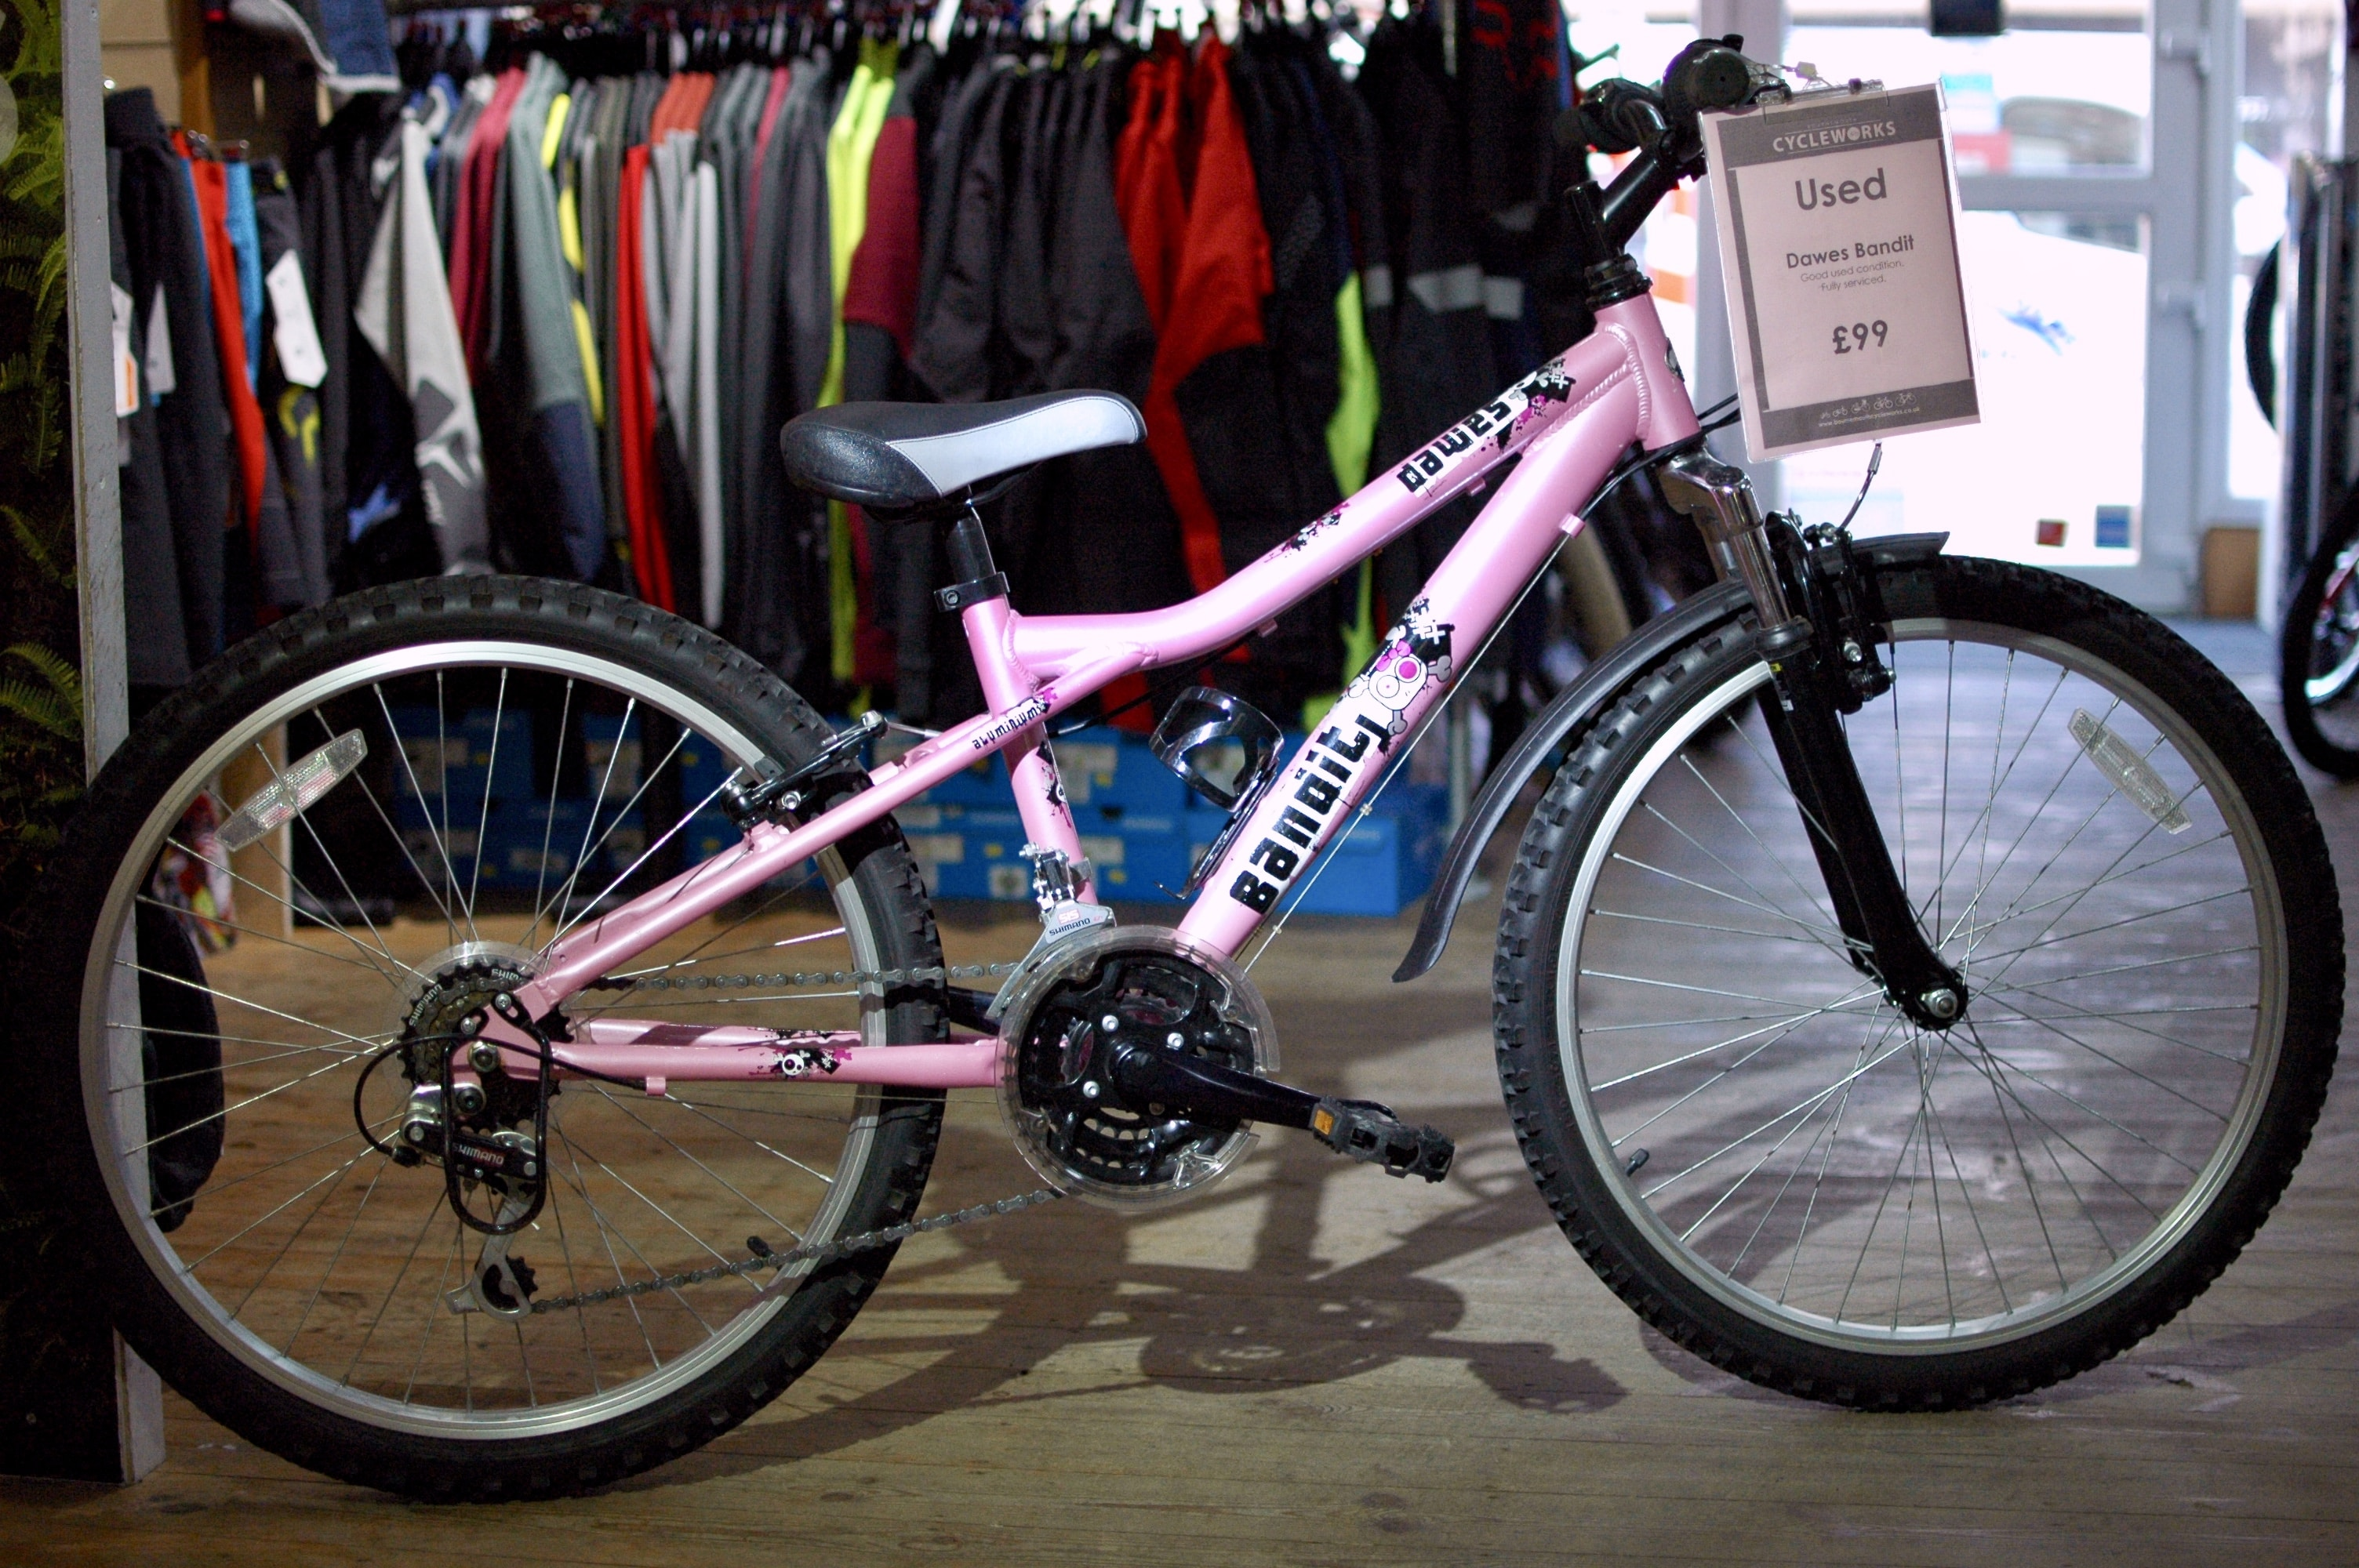 Used Bike - Dawes Bandit Pink - £99